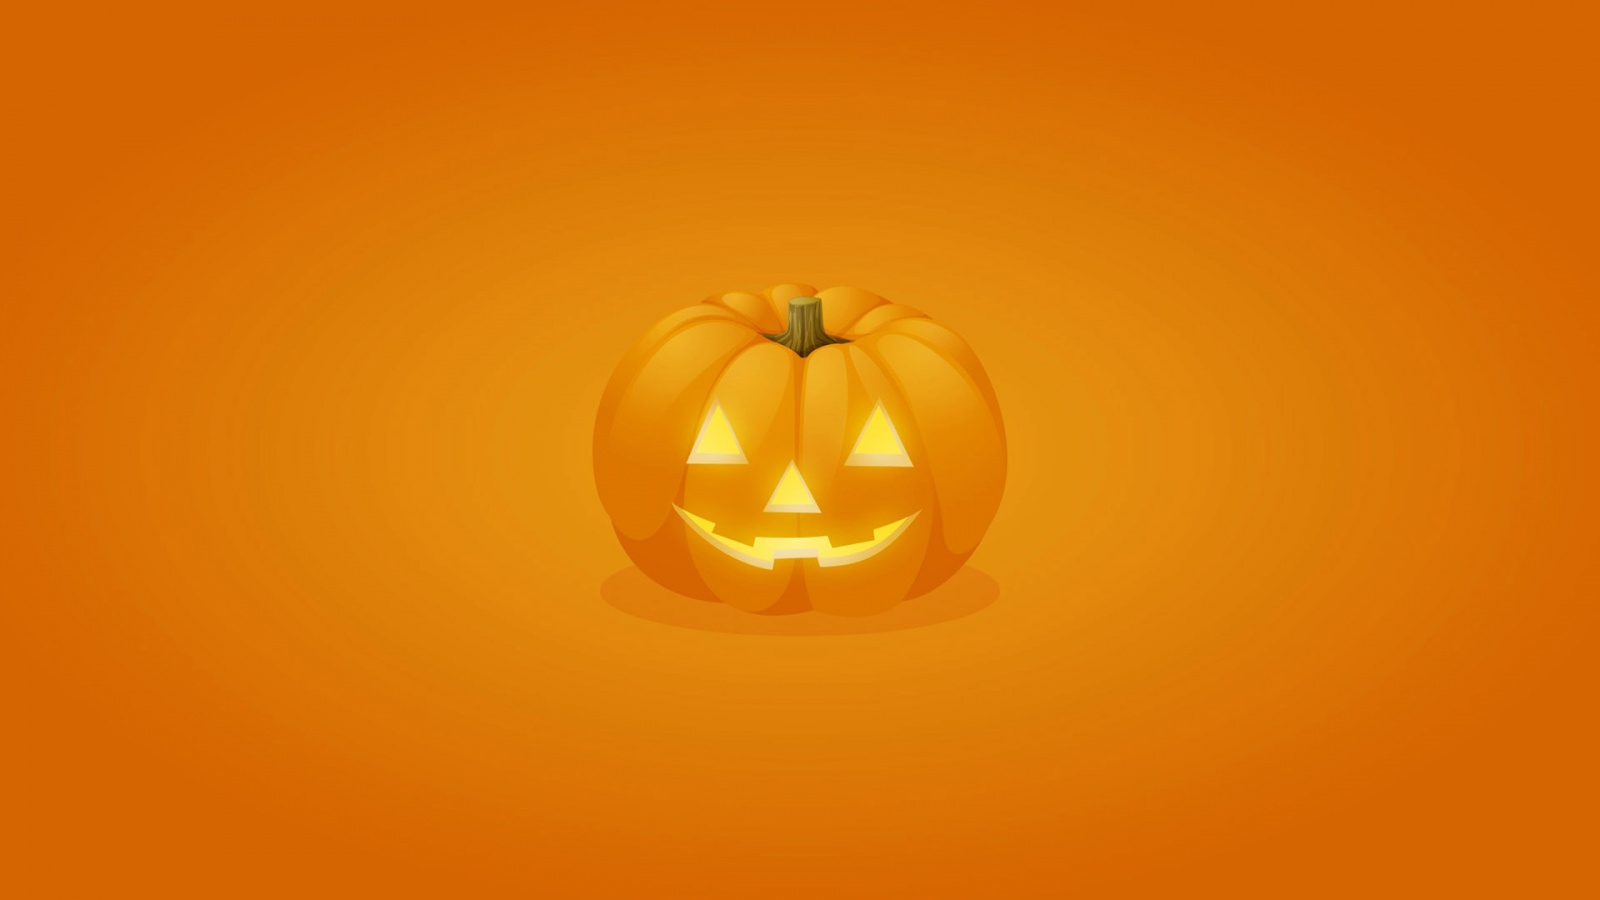 Halloween pumpkin wallpapers in jpg format for free download halloween pumpkin wallpapers toneelgroepblik Images